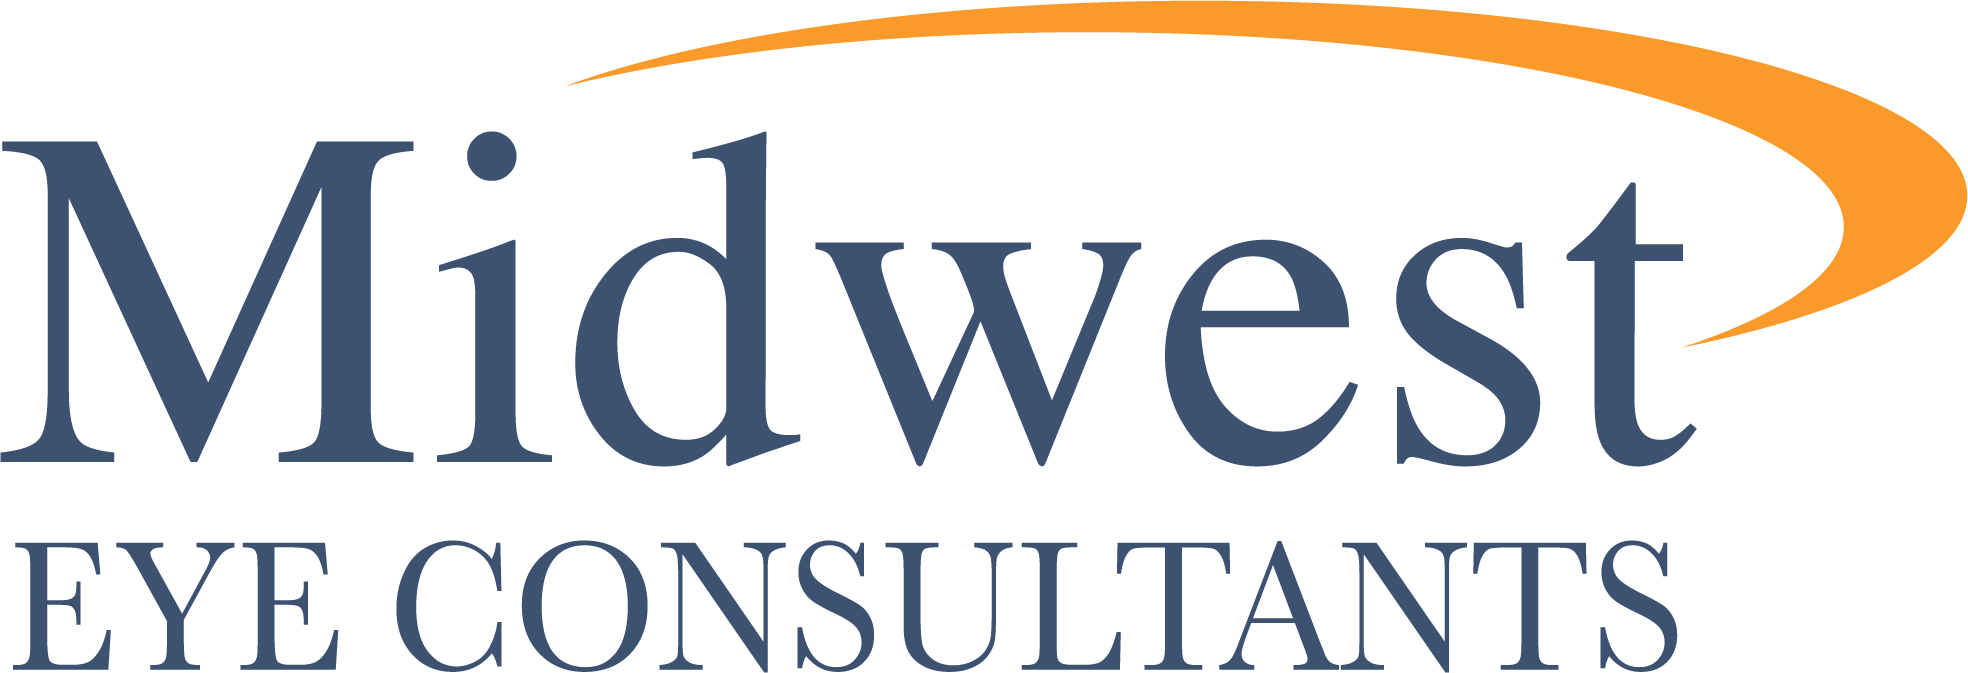 Midwest Eye Consultants Workwear